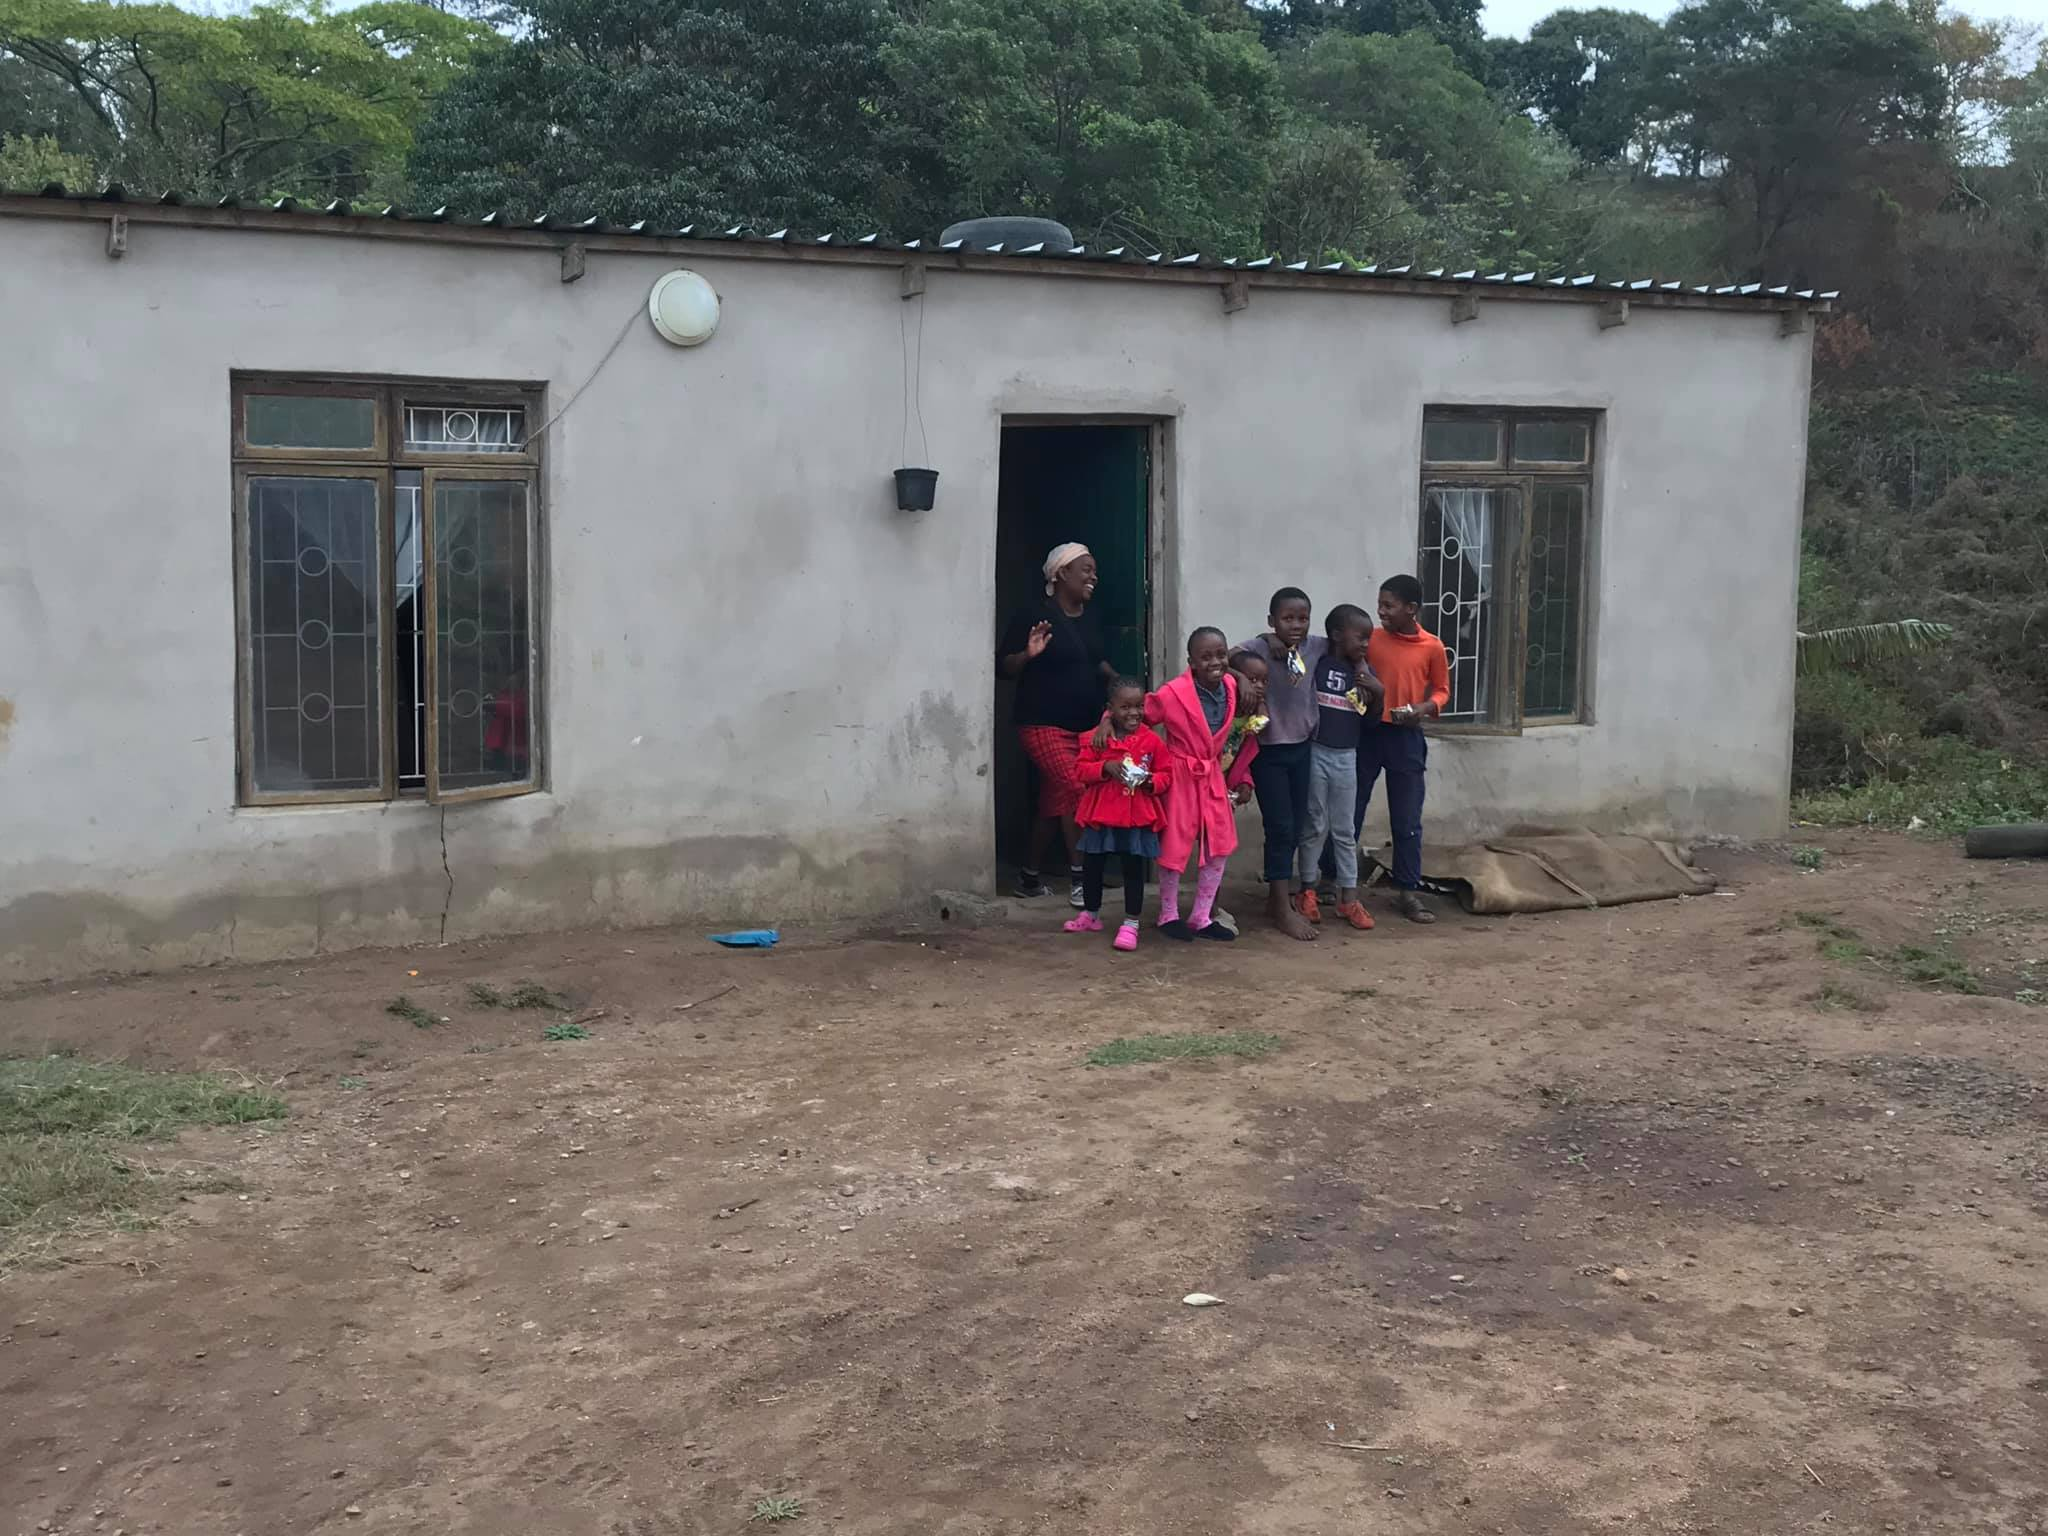 Bongi with some of the grand children at her front door